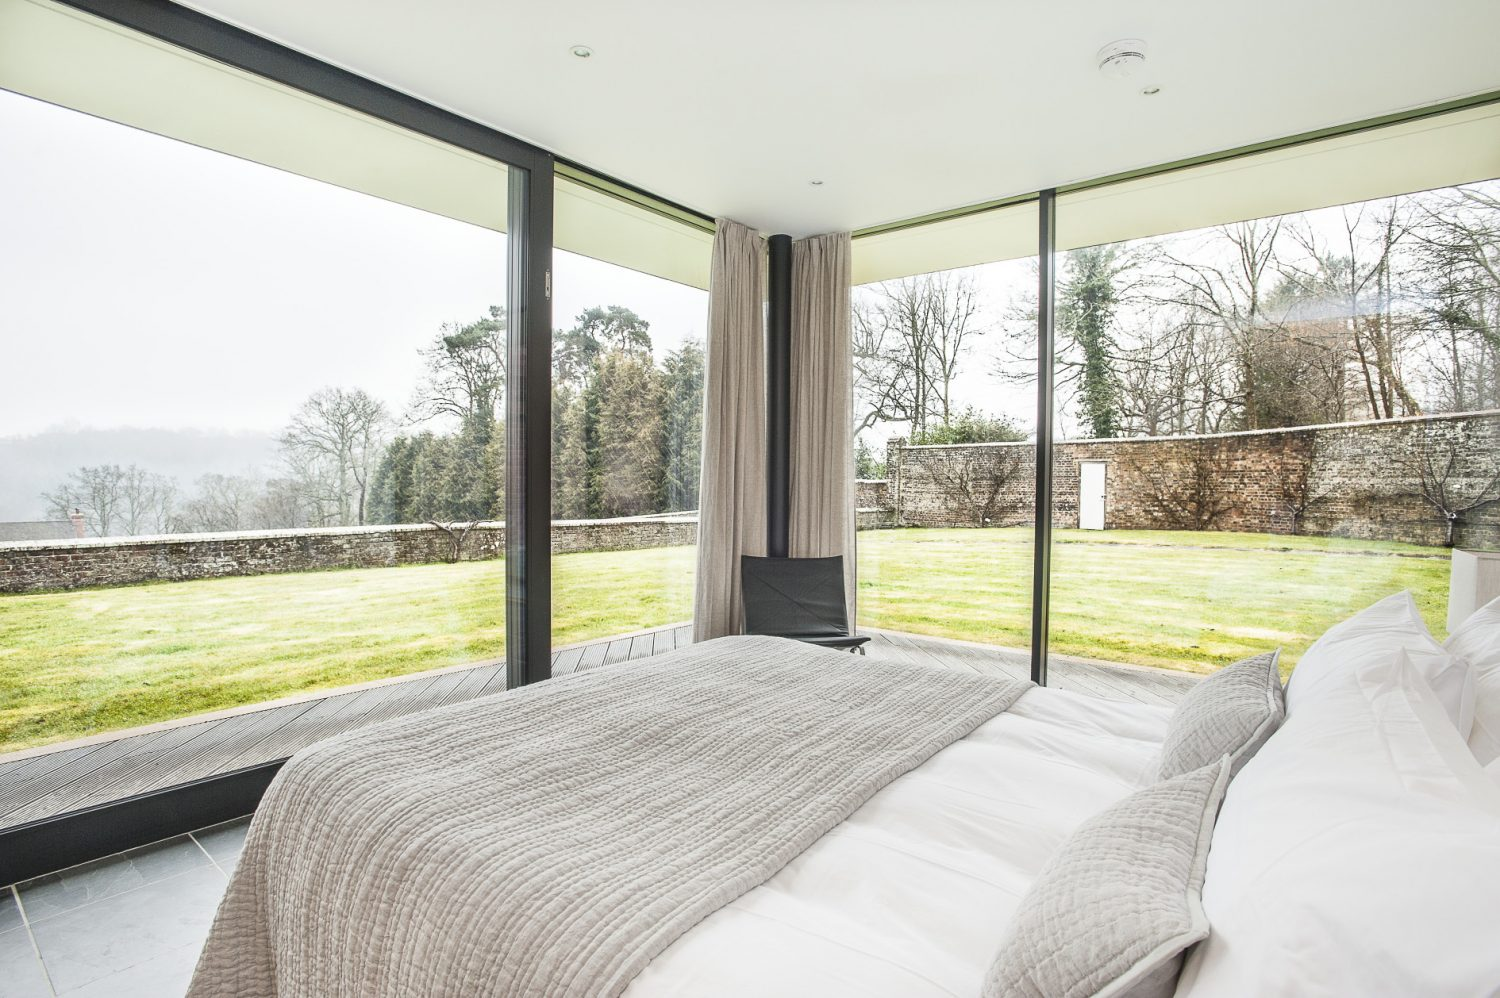 The end bedroom's two exterior glass walls look out over the lovely terraced garden